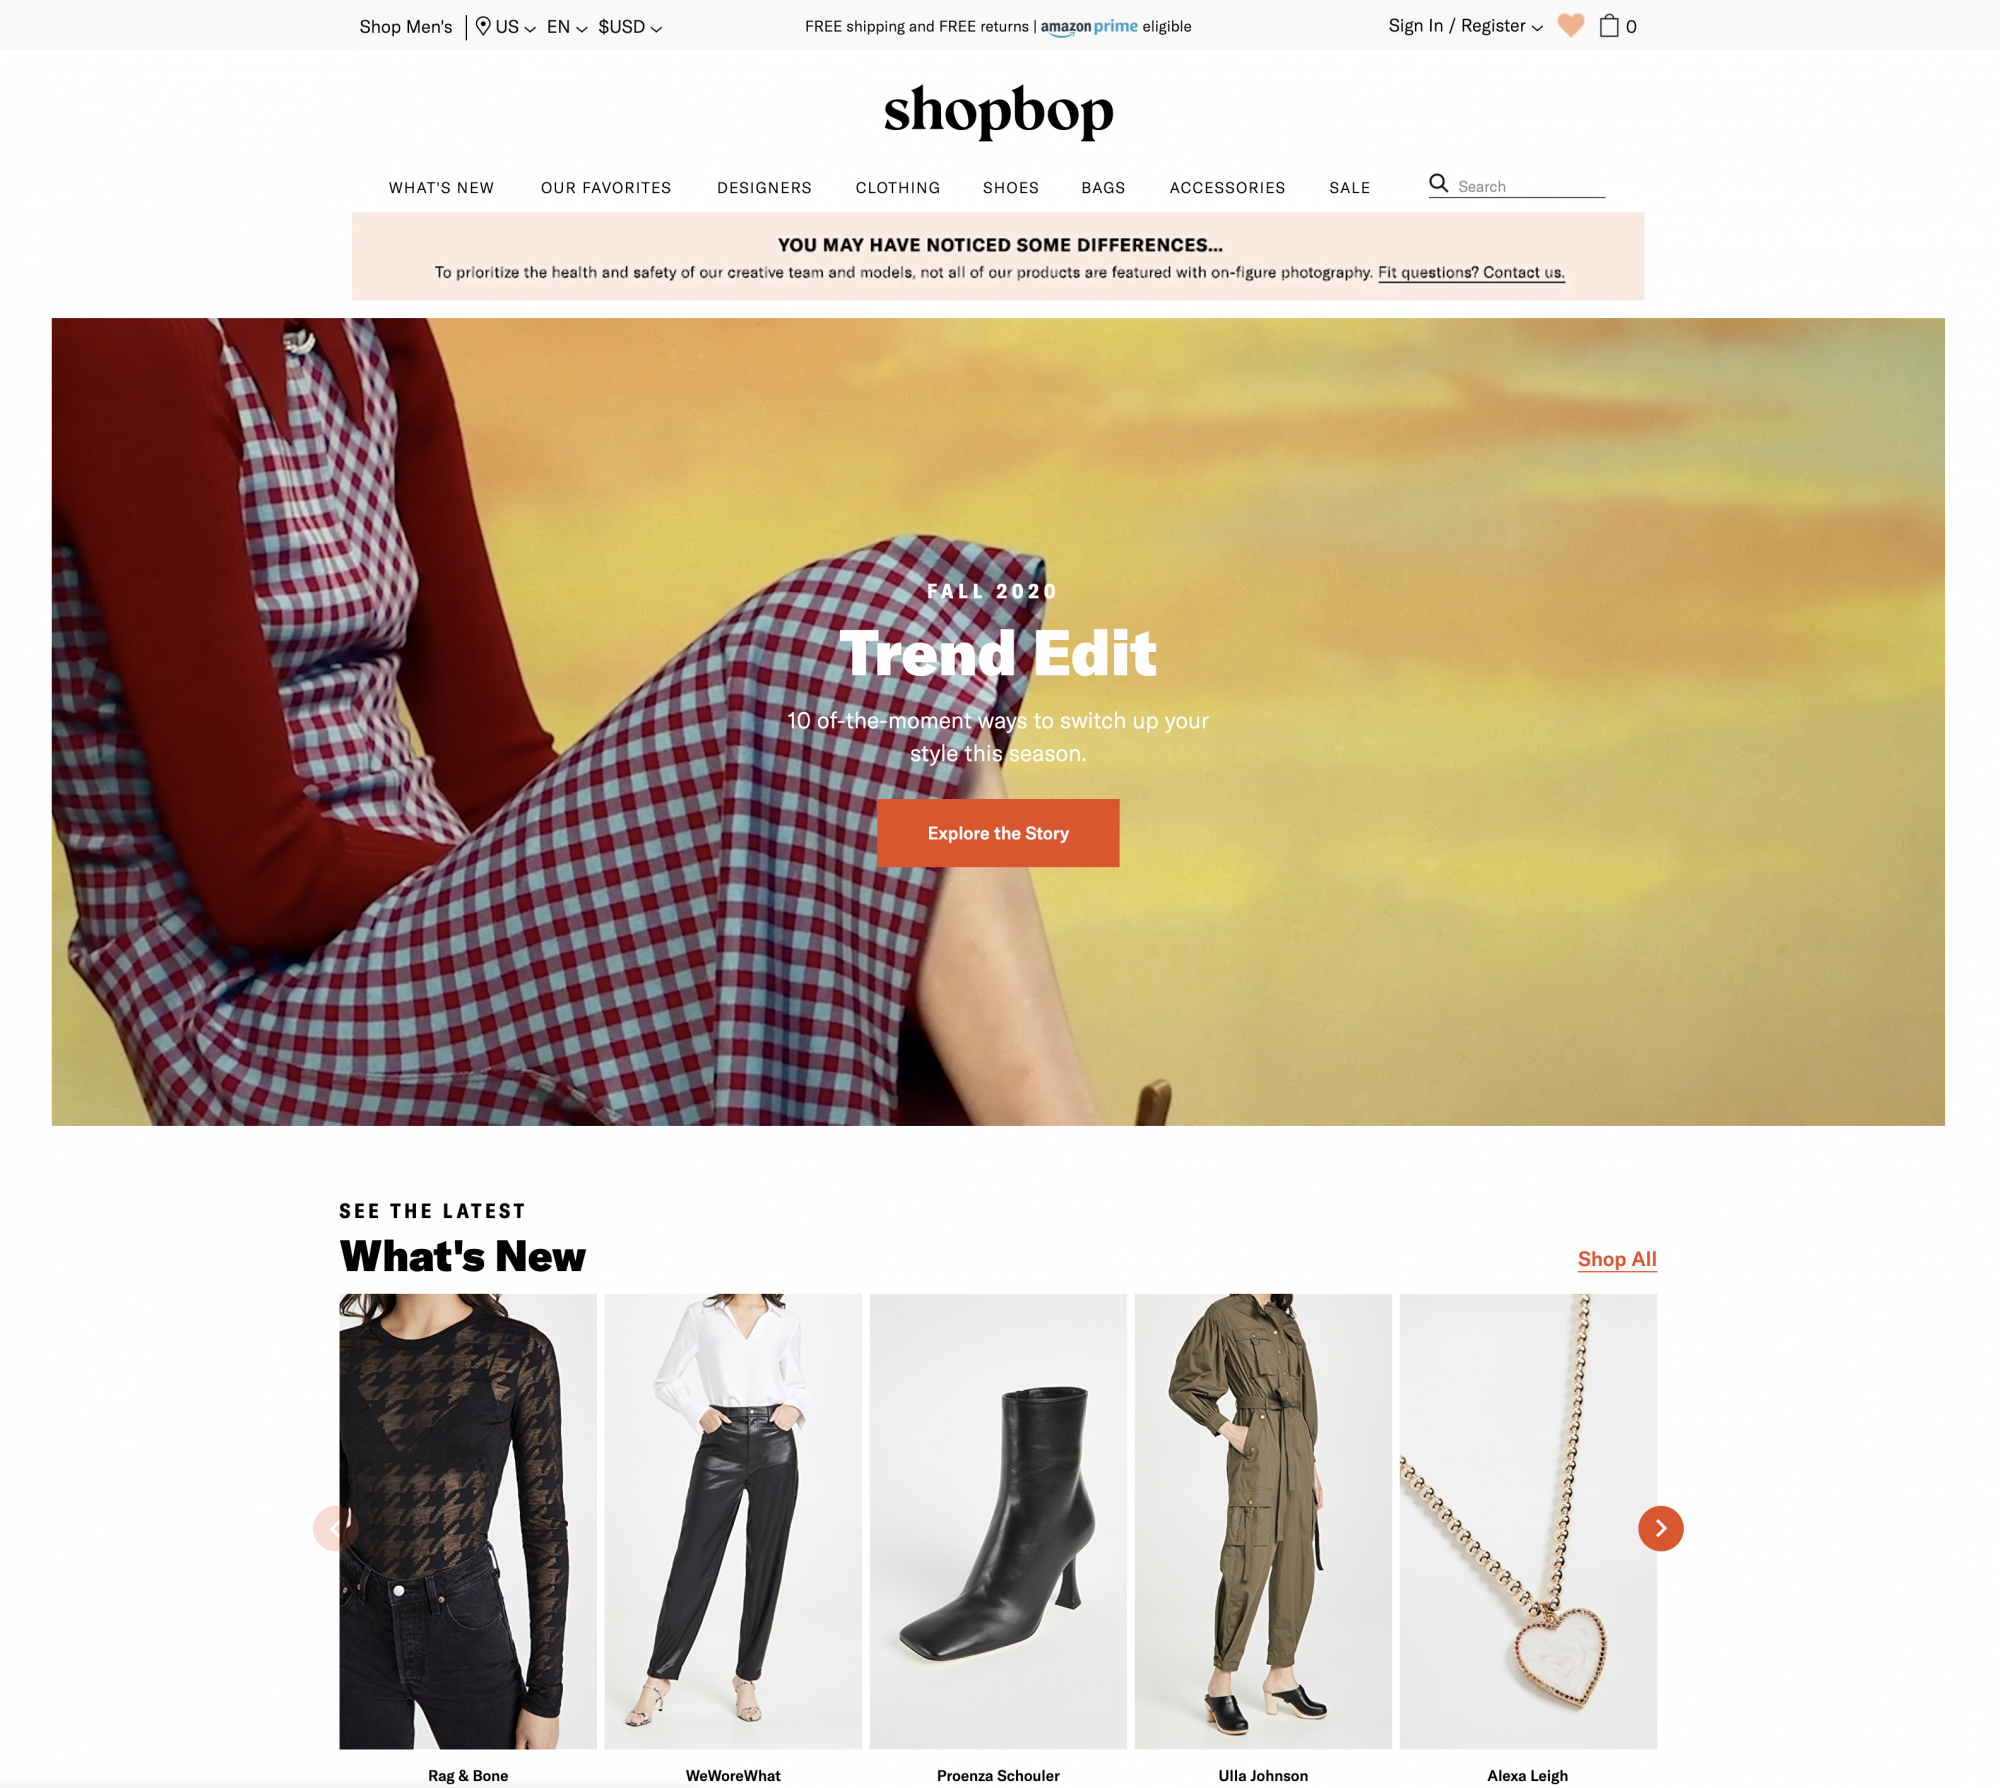 Best Places To Shop, Erin Busbee of Busbee Style sharing the best places to shop for women over 40 including Shopbop for trendy pieces